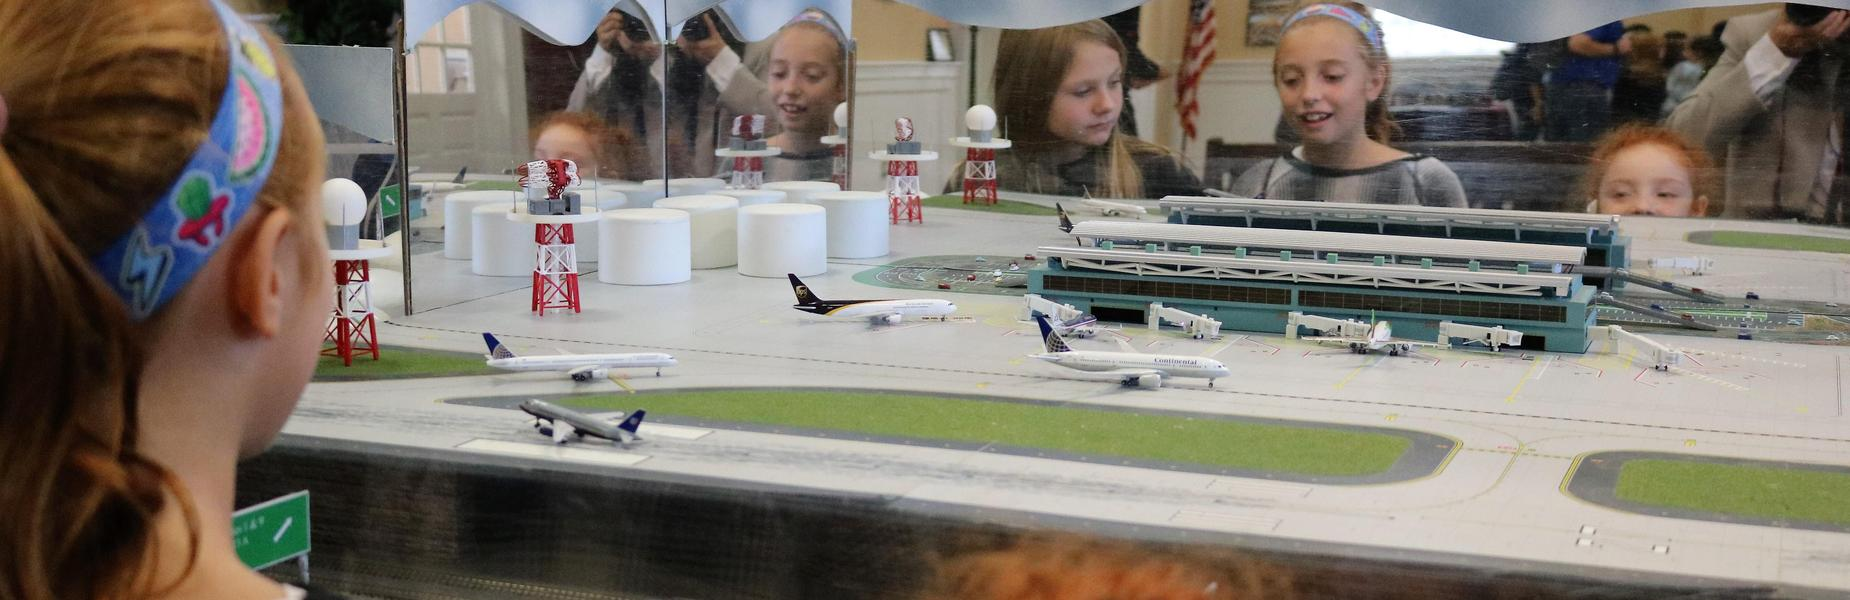 McKinley 3rd graders enjoy a model train layout during a walking tour of Westfield.